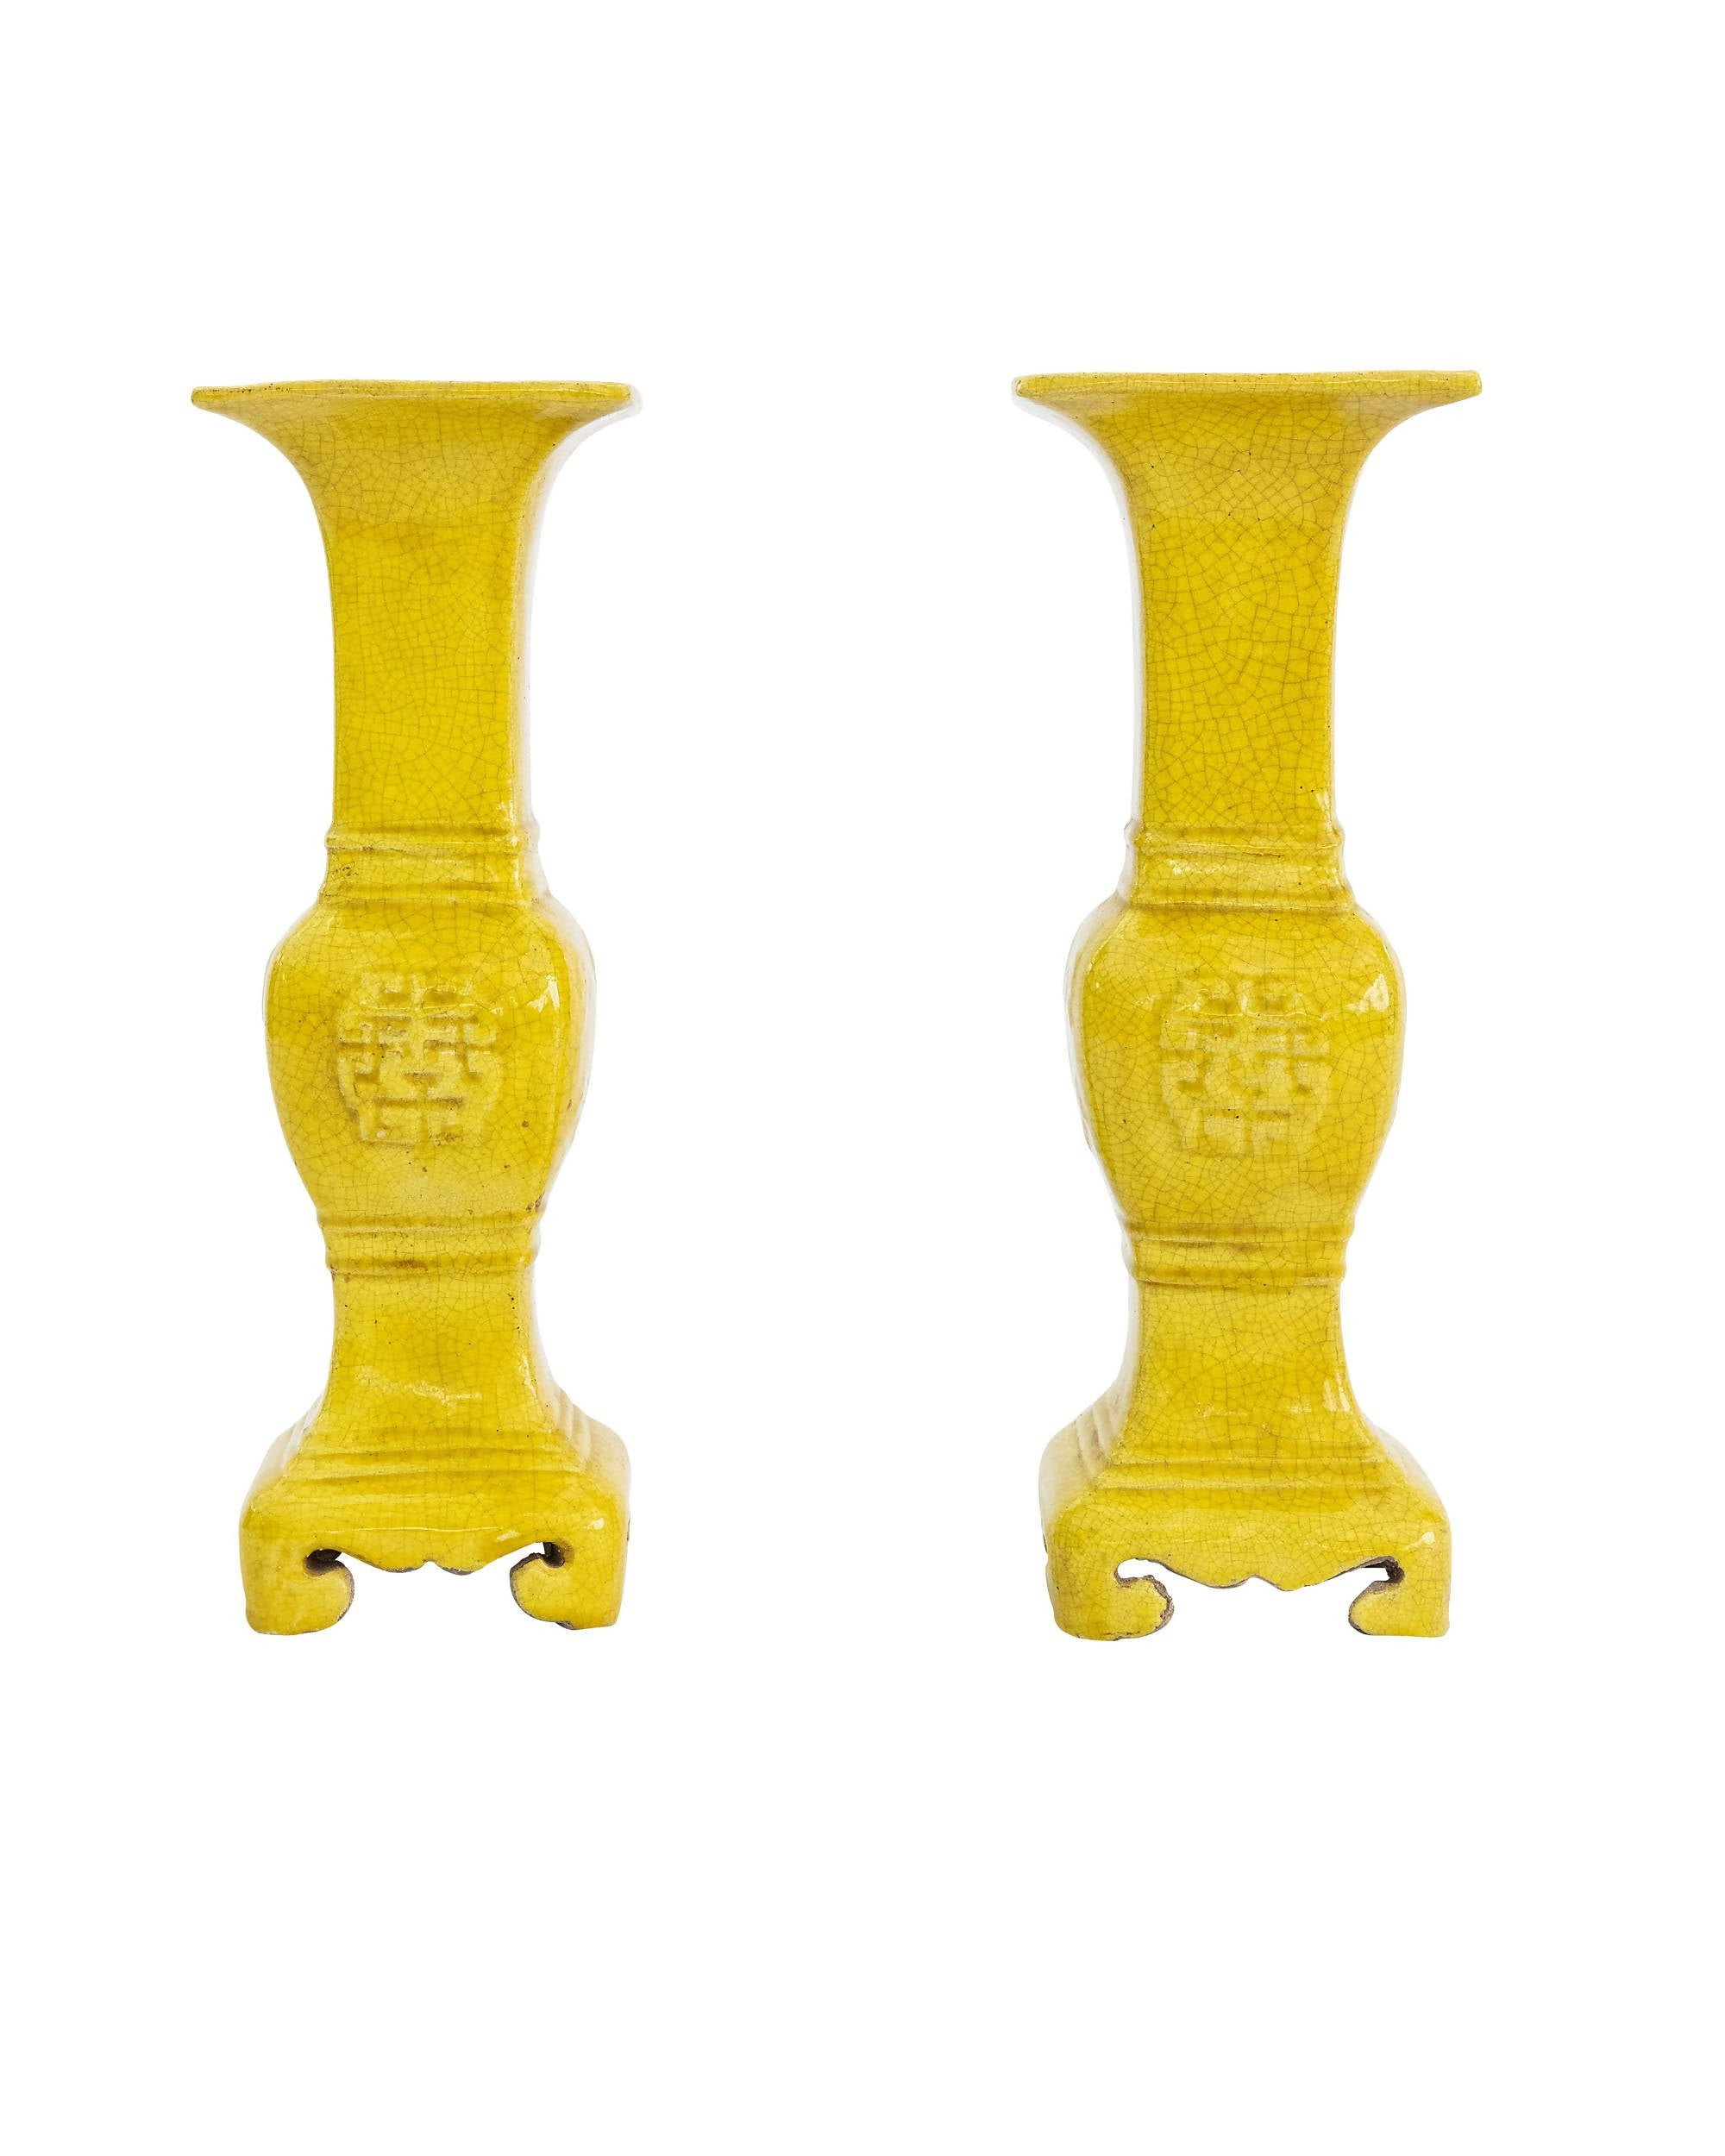 Pair of Chinese vases in yellow crackle glaze ceramic